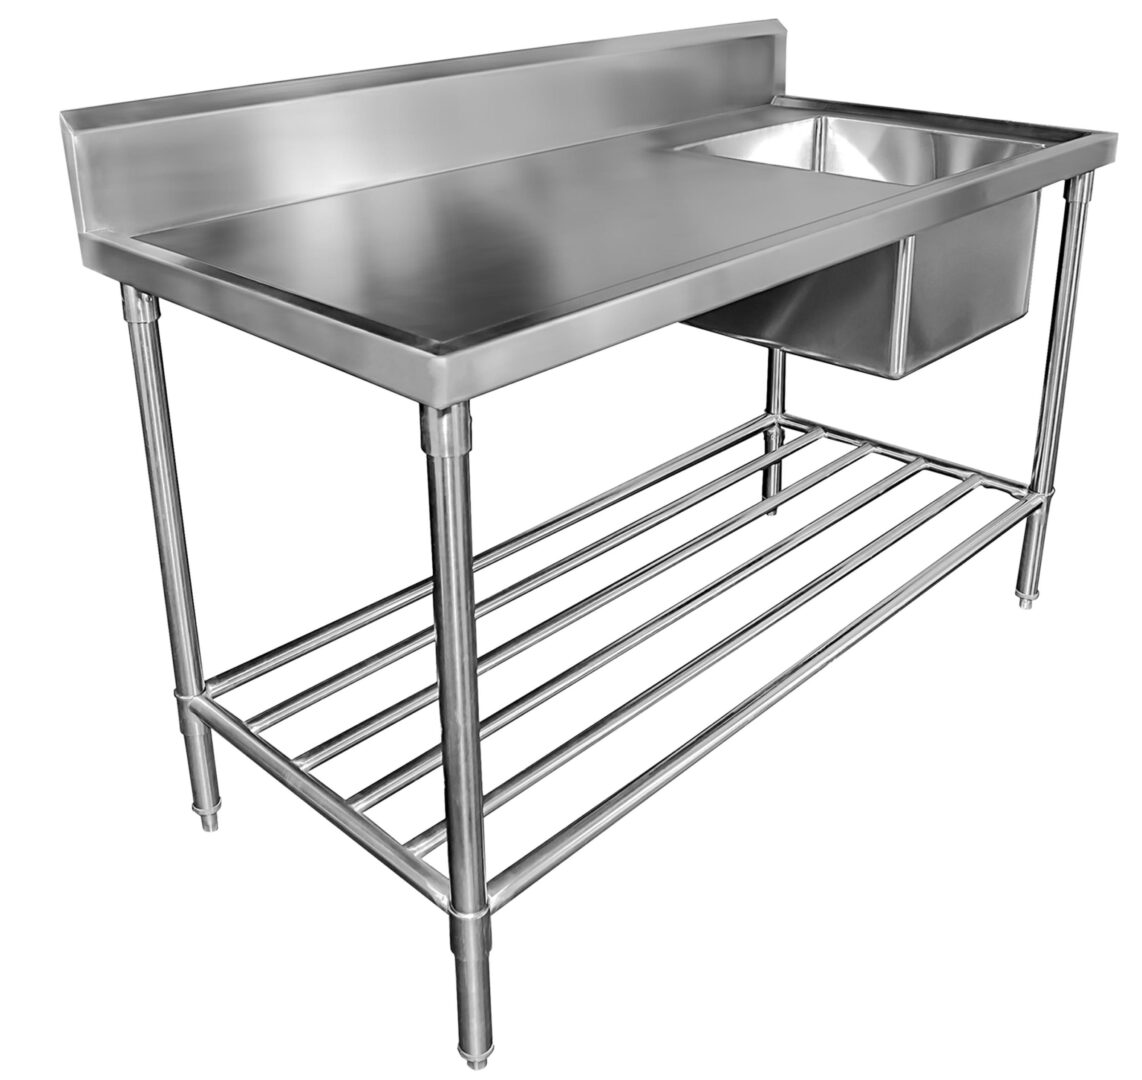 Simco SS1621C Sink Bench with Splashback – W2100 x D600 x H900